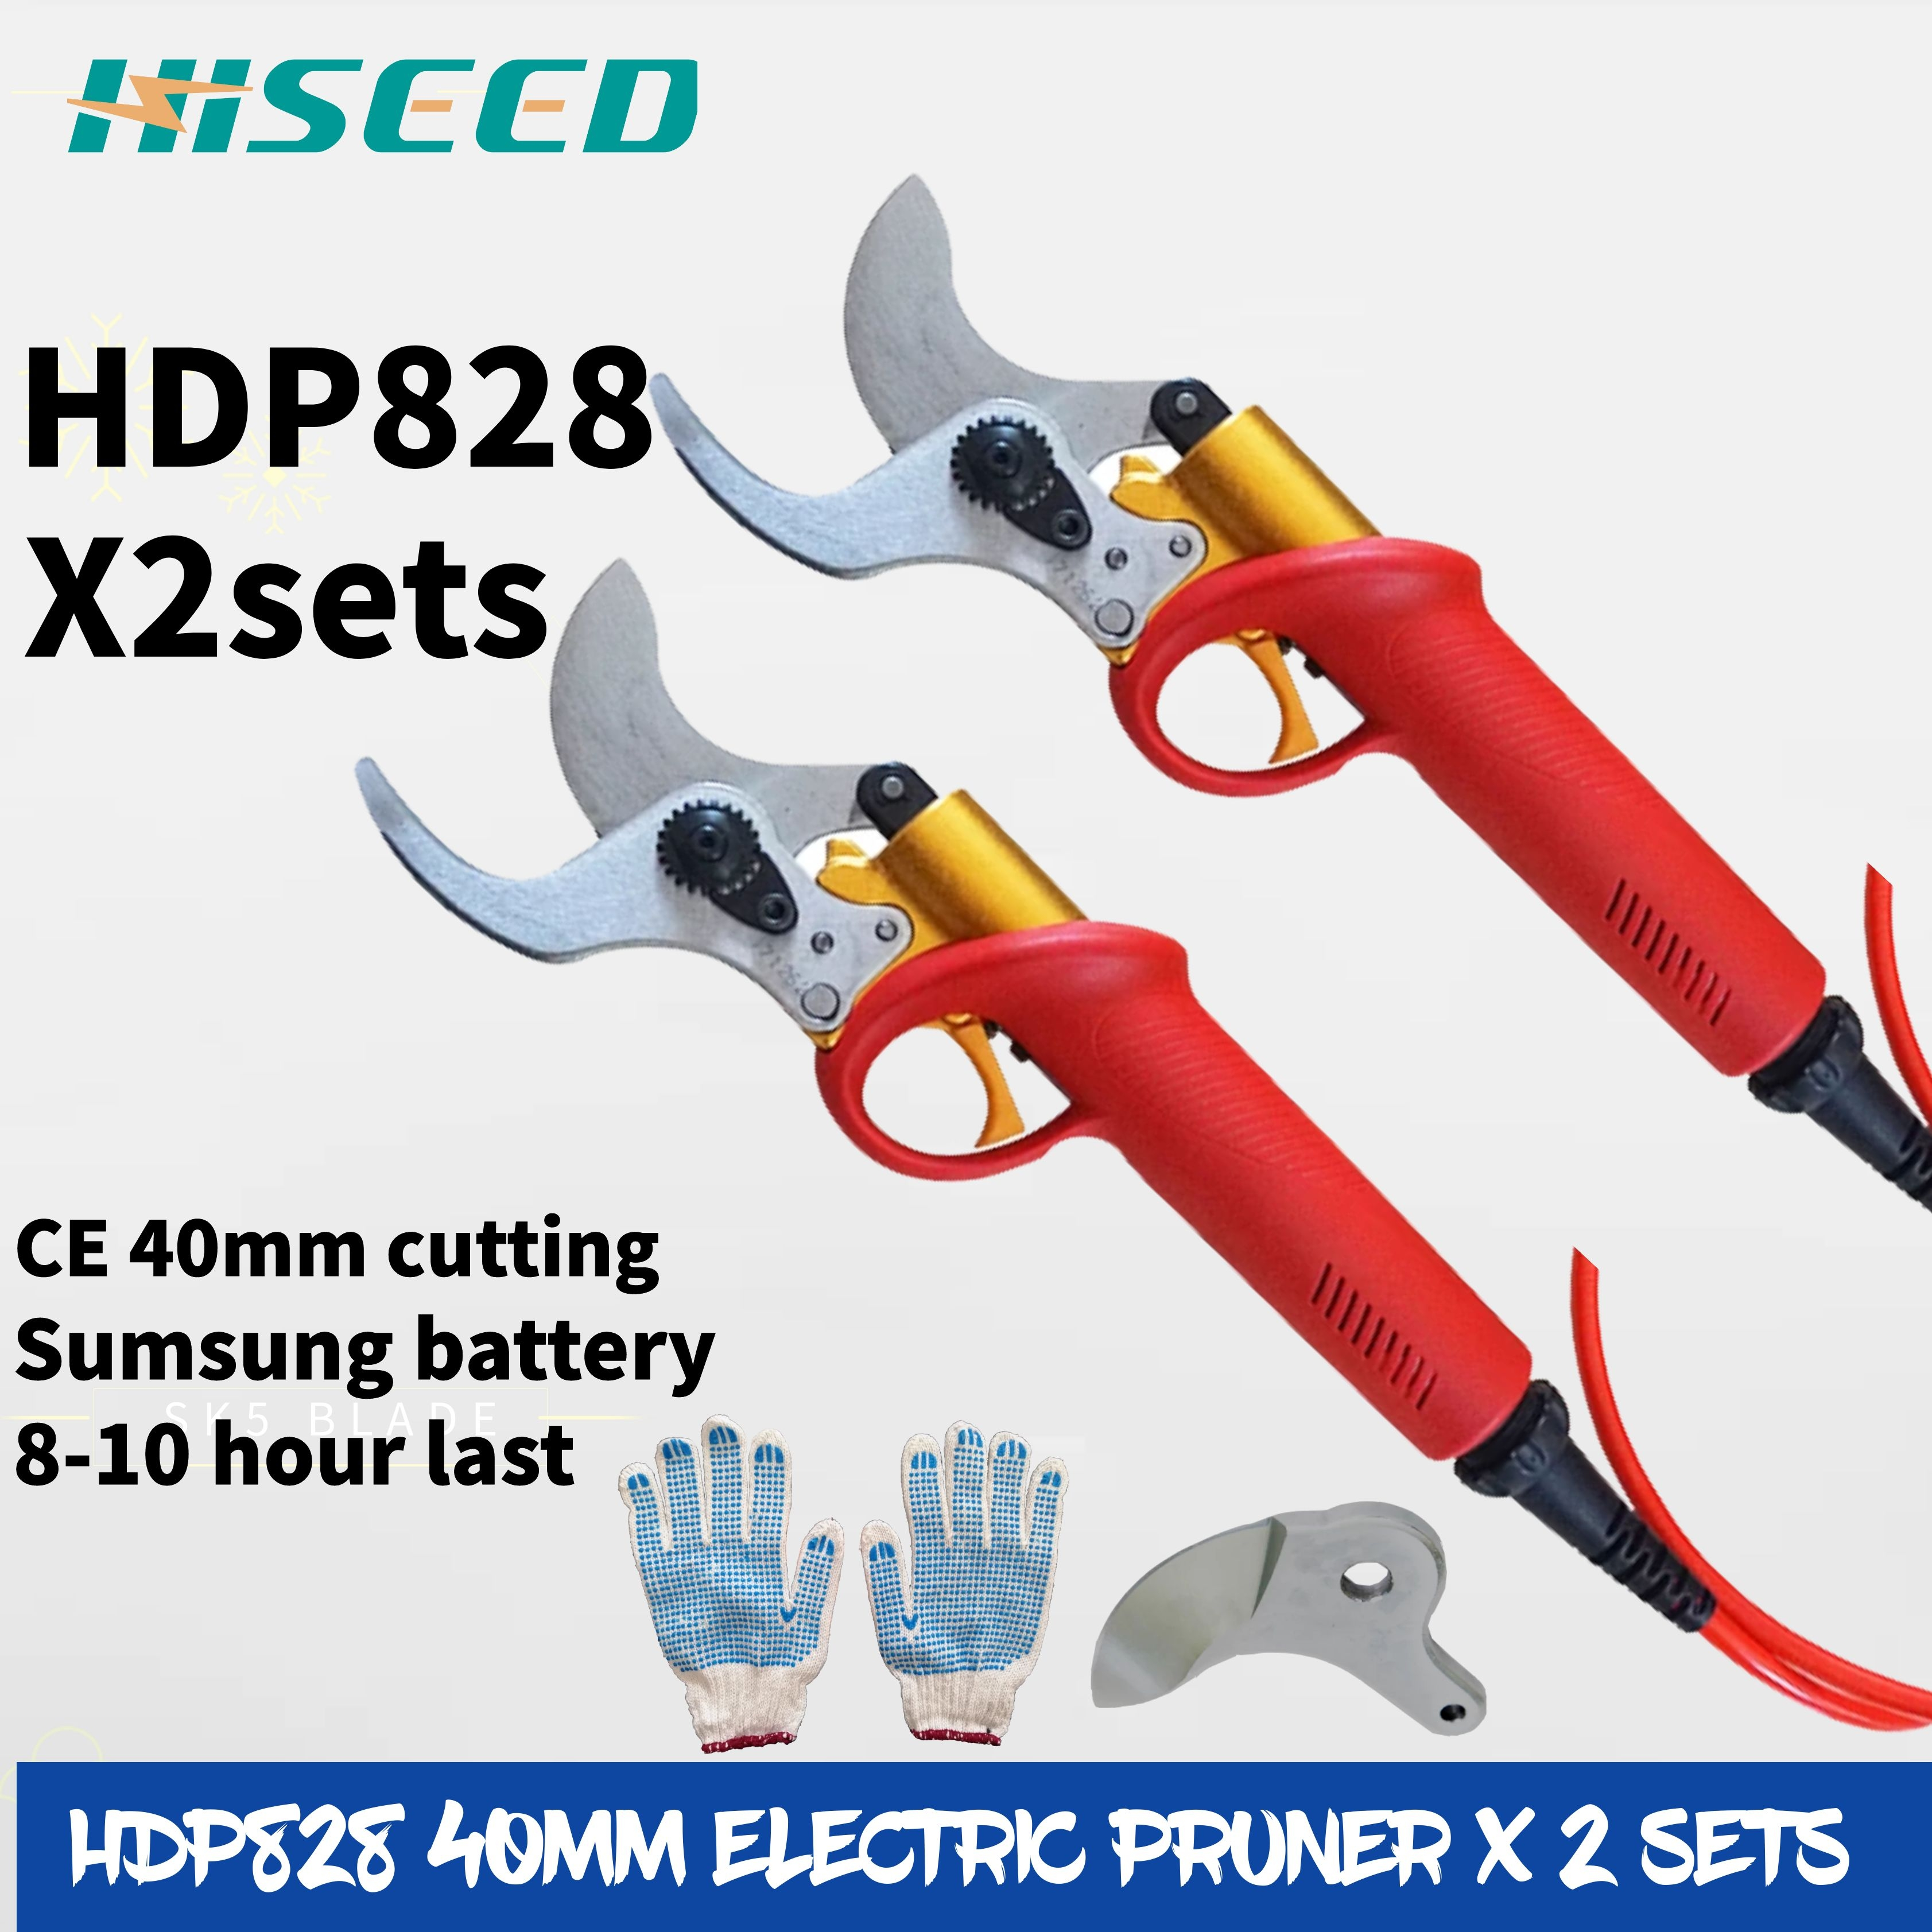 HDP828 X2 sets Industry Directly Sell Electric Pruning Shears/Scissors,The newest powerful electric scissorsHDP828 X2 sets Industry Directly Sell Electric Pruning Shears/Scissors,The newest powerful electric scissors